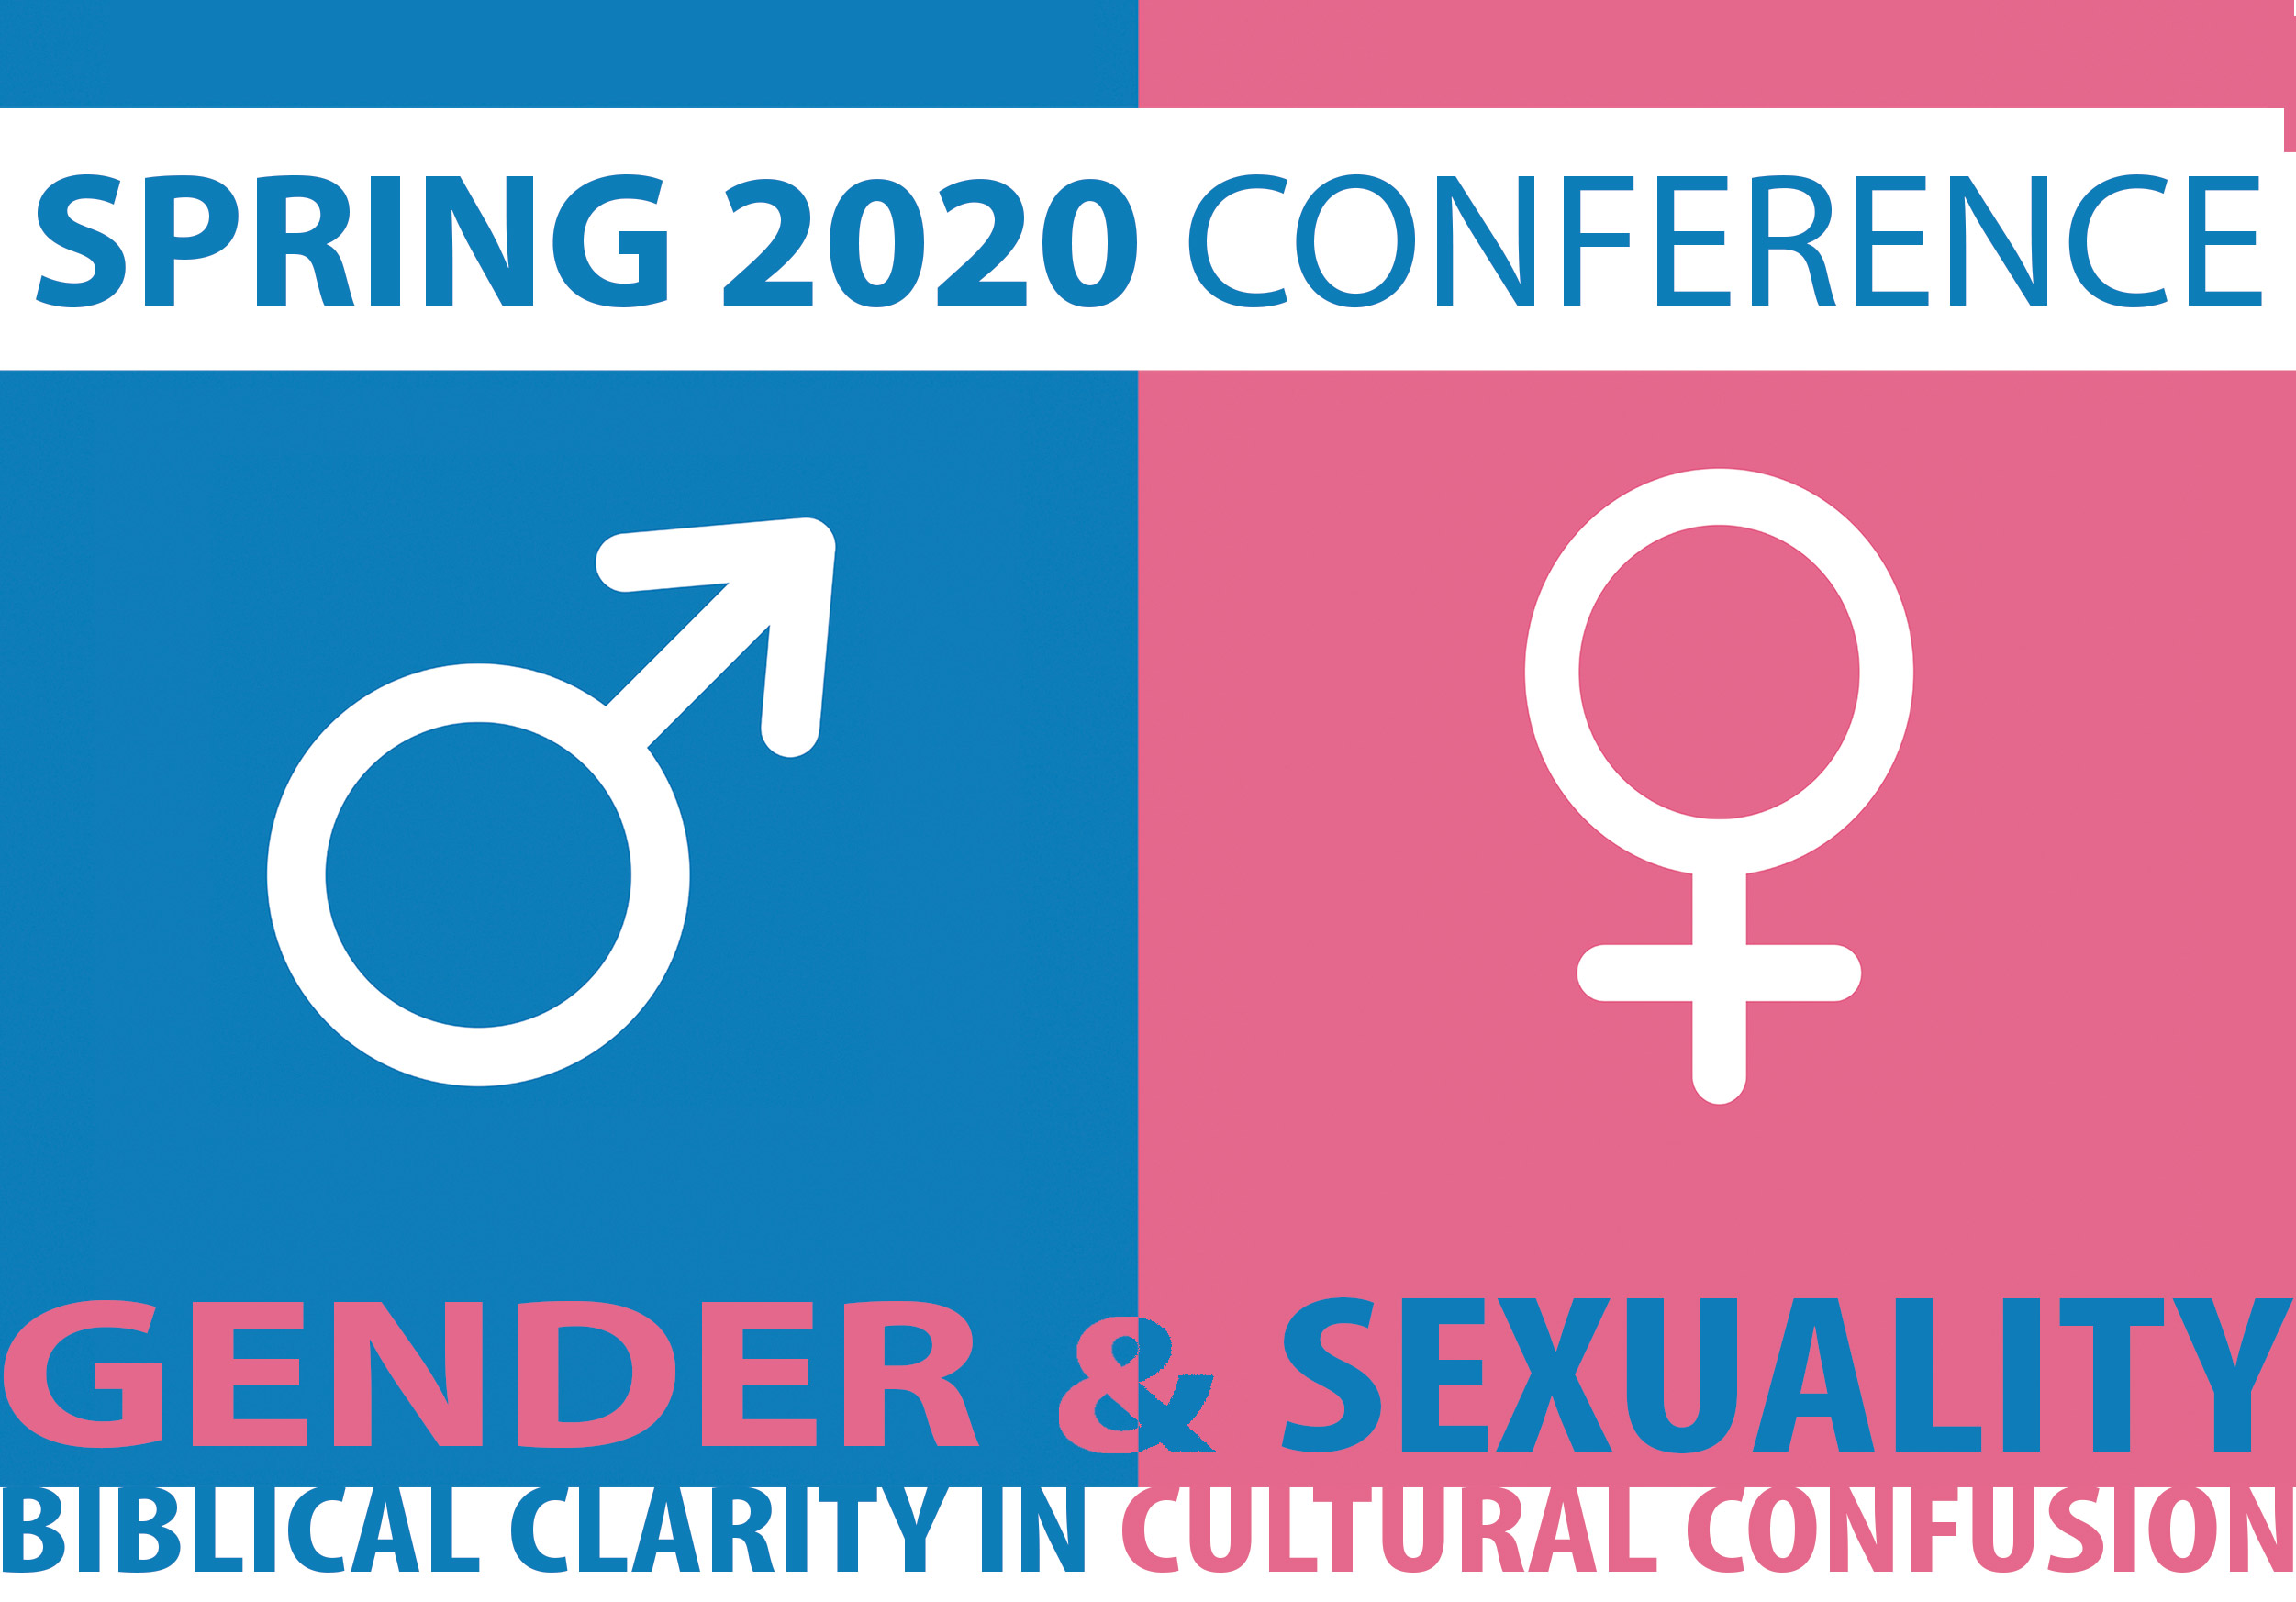 Spring 2020 Conference - Gender & Sexuality, Biblical Clarity in Cultural Confusion